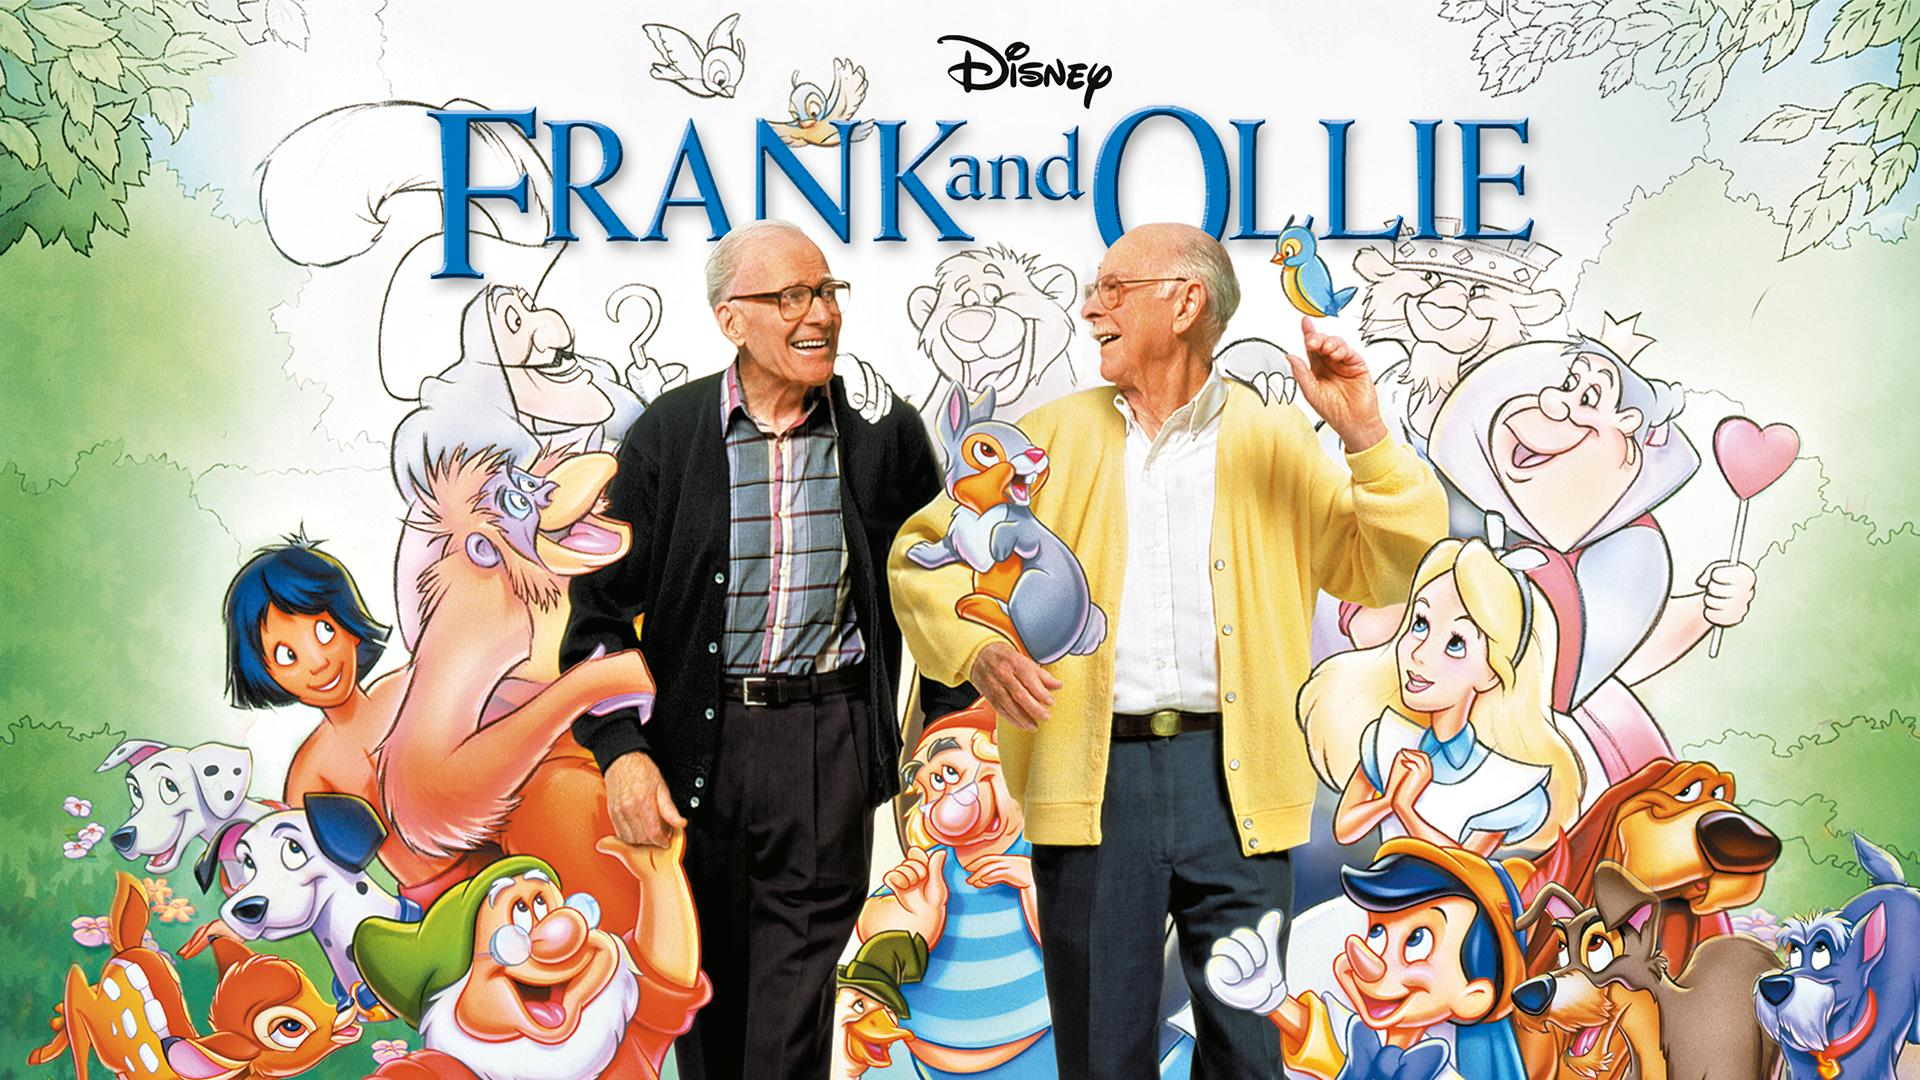 Frank and Ollie Disney Plus